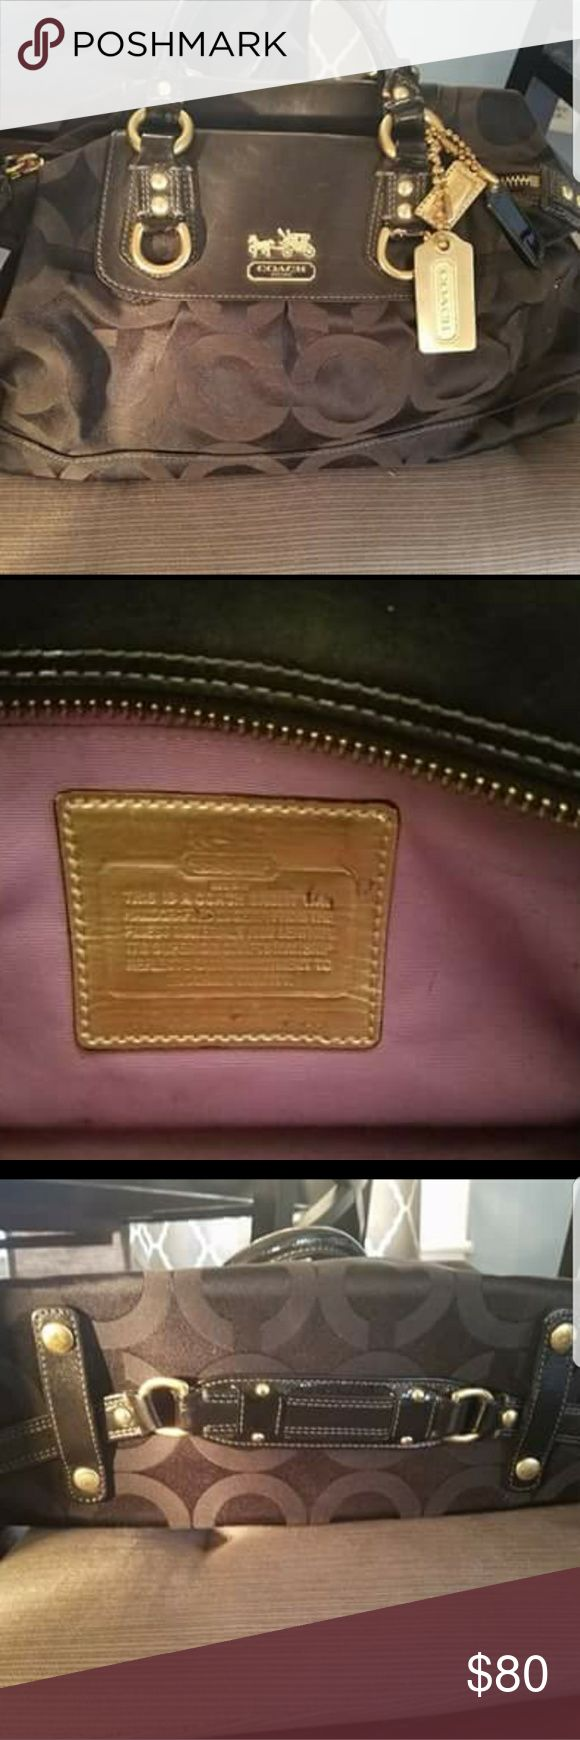 Coach Madison Sabrina satchel With gold embelleshments. Lightly used, only a handful of times. Accepting offers and trades! Coach Bags Satchels